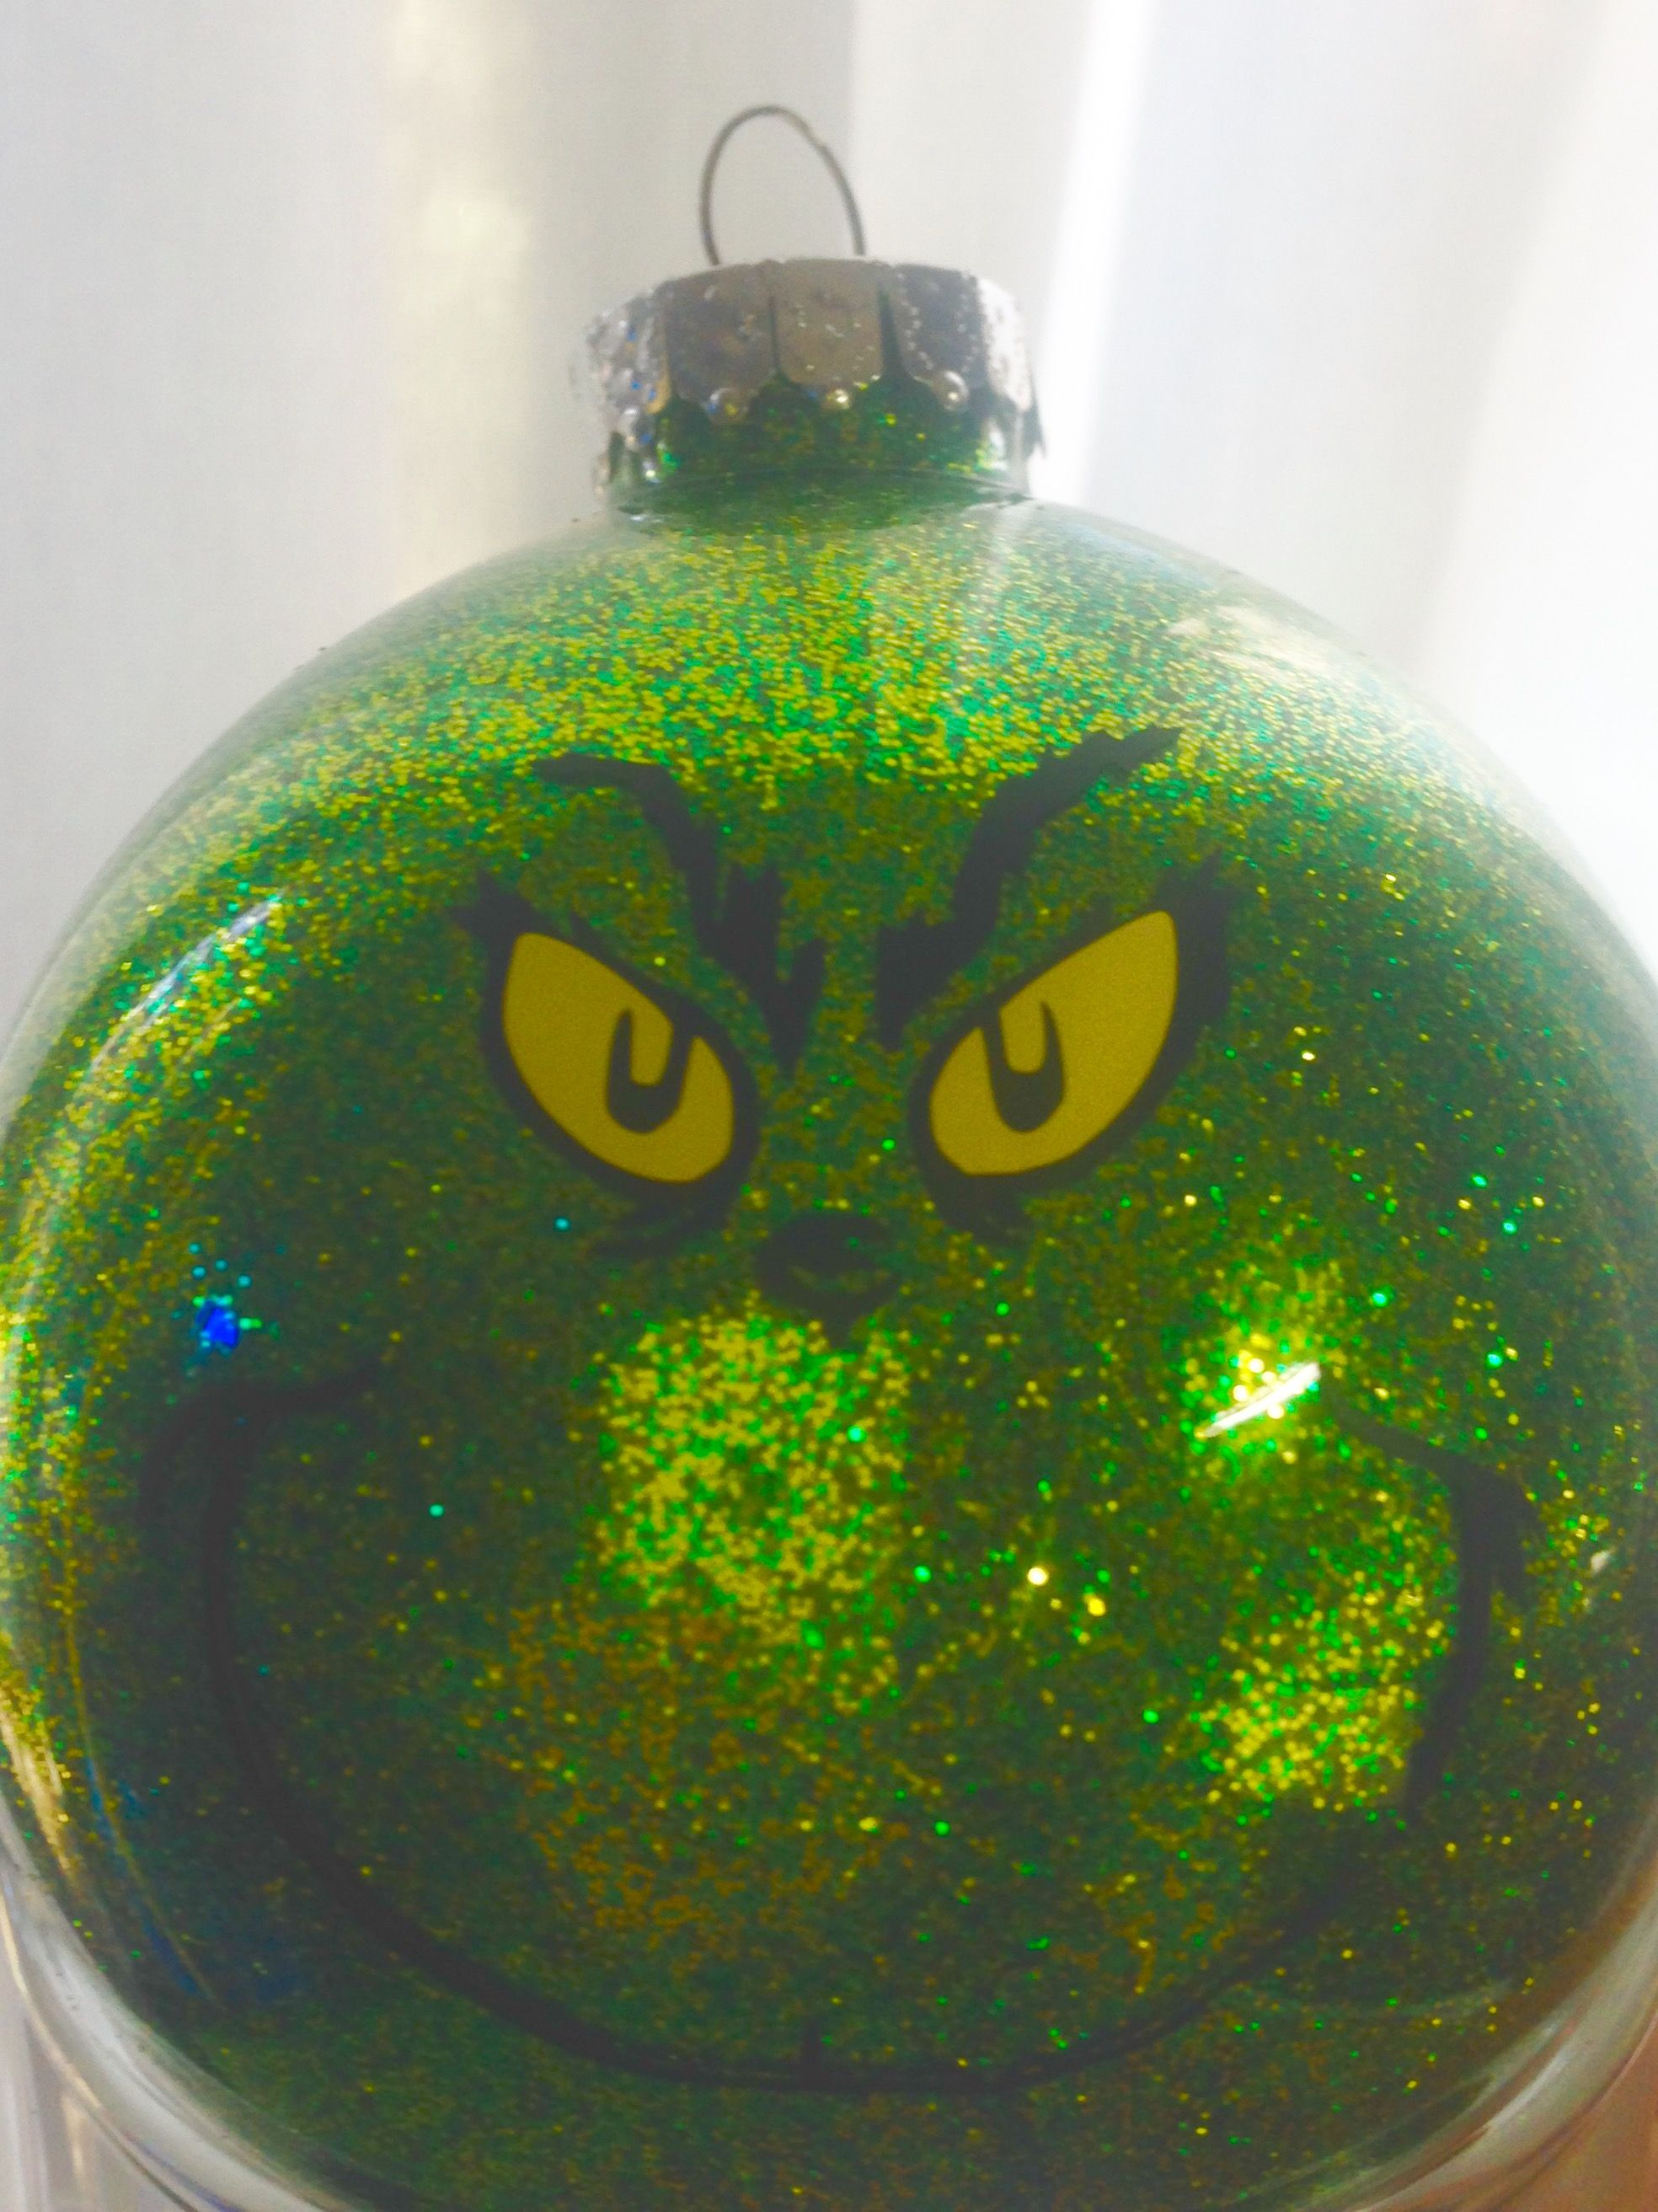 Grinch Ornament Michael S And Cricut Grinch Ornaments Christmas Bulbs Christmas Ornaments